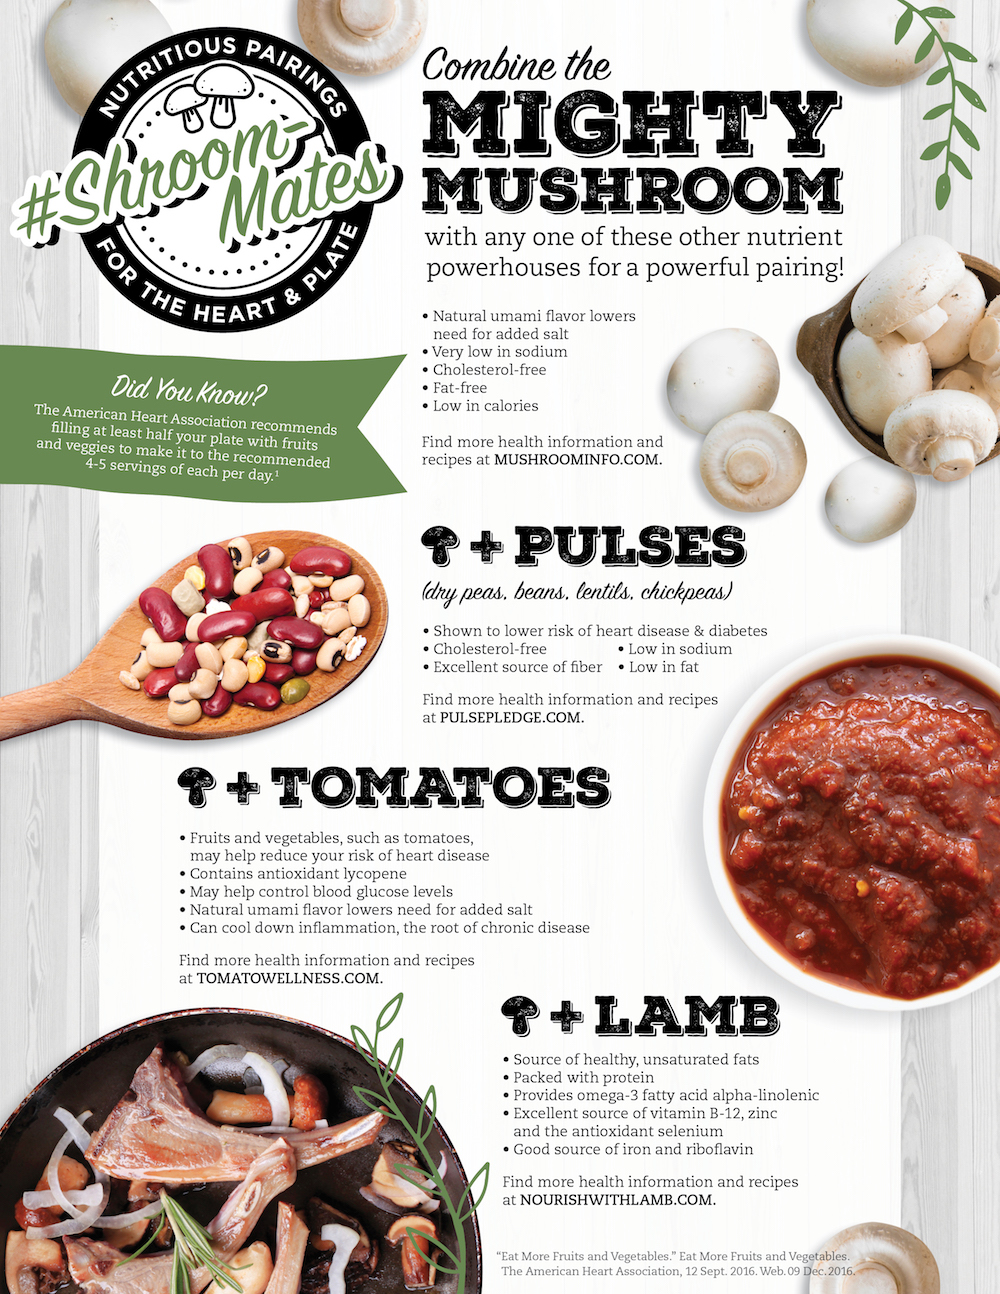 Nutritious Ingredients that Pair Perfectly with Mushrooms